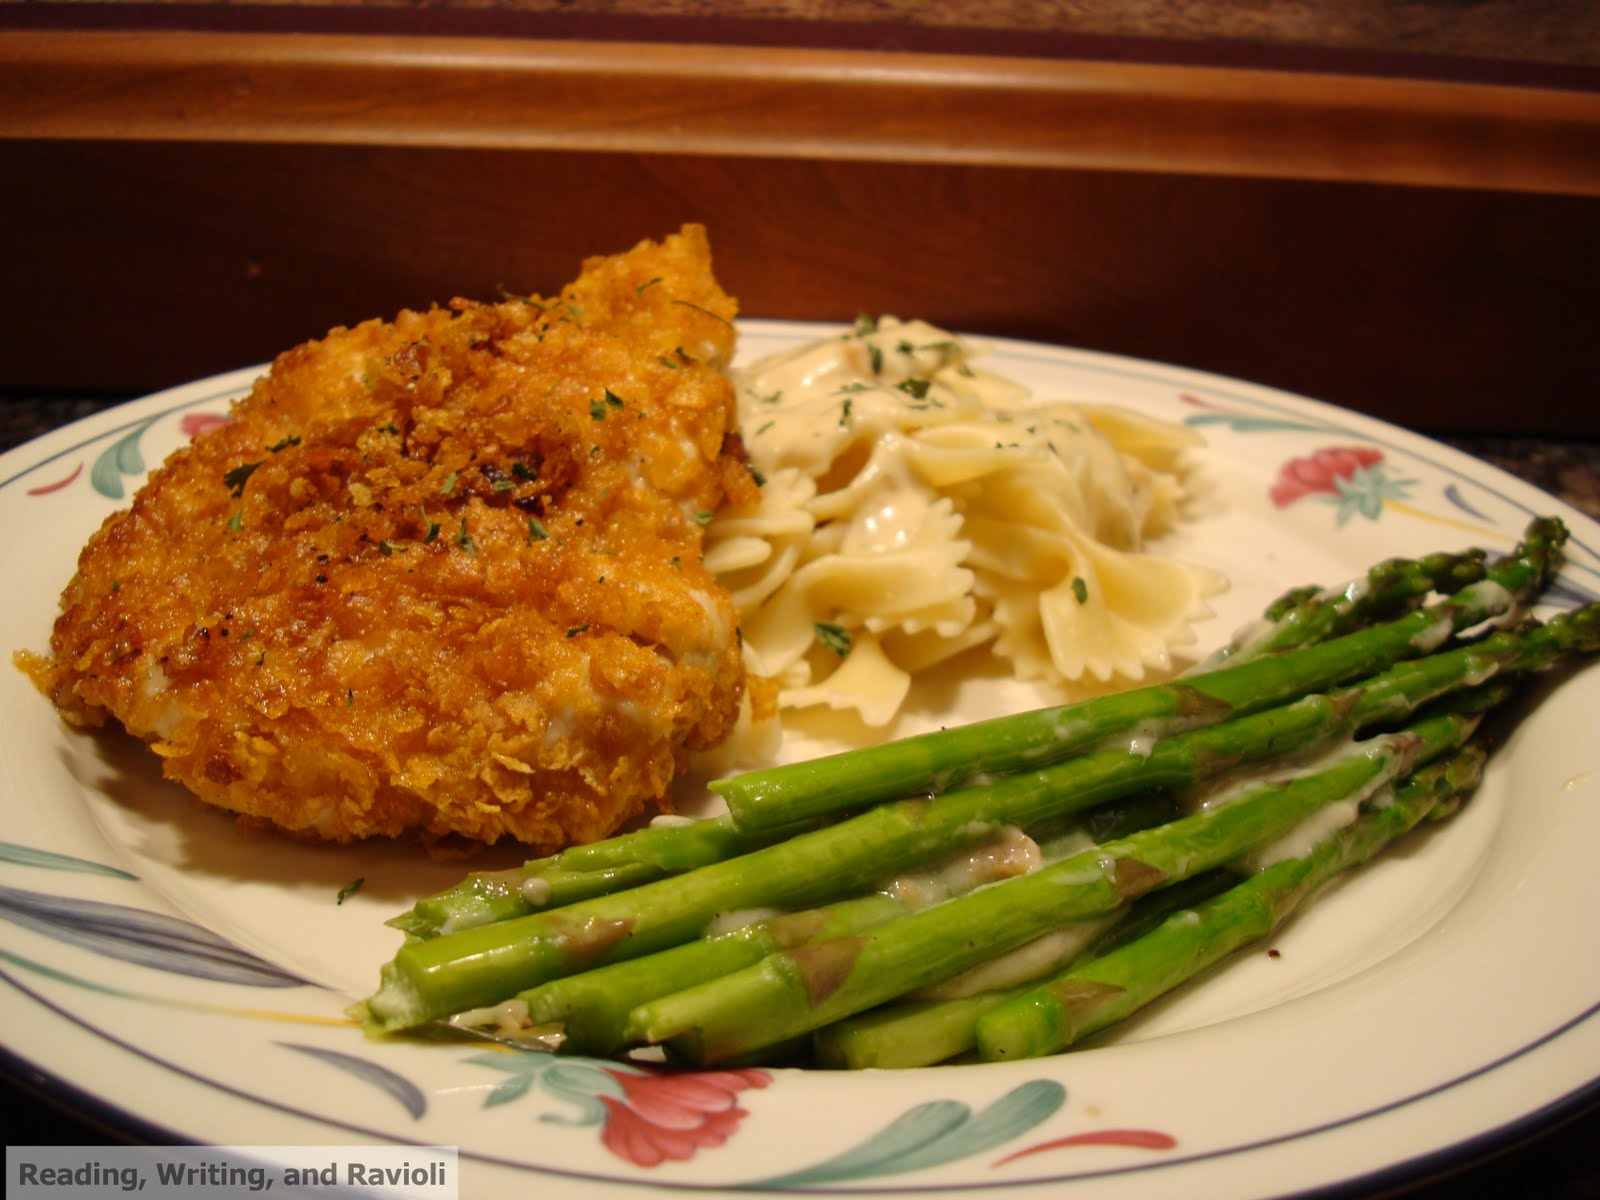 ... : Crispy Chicken with Creamy Italian Sauce, Farfalle, and Asparagus